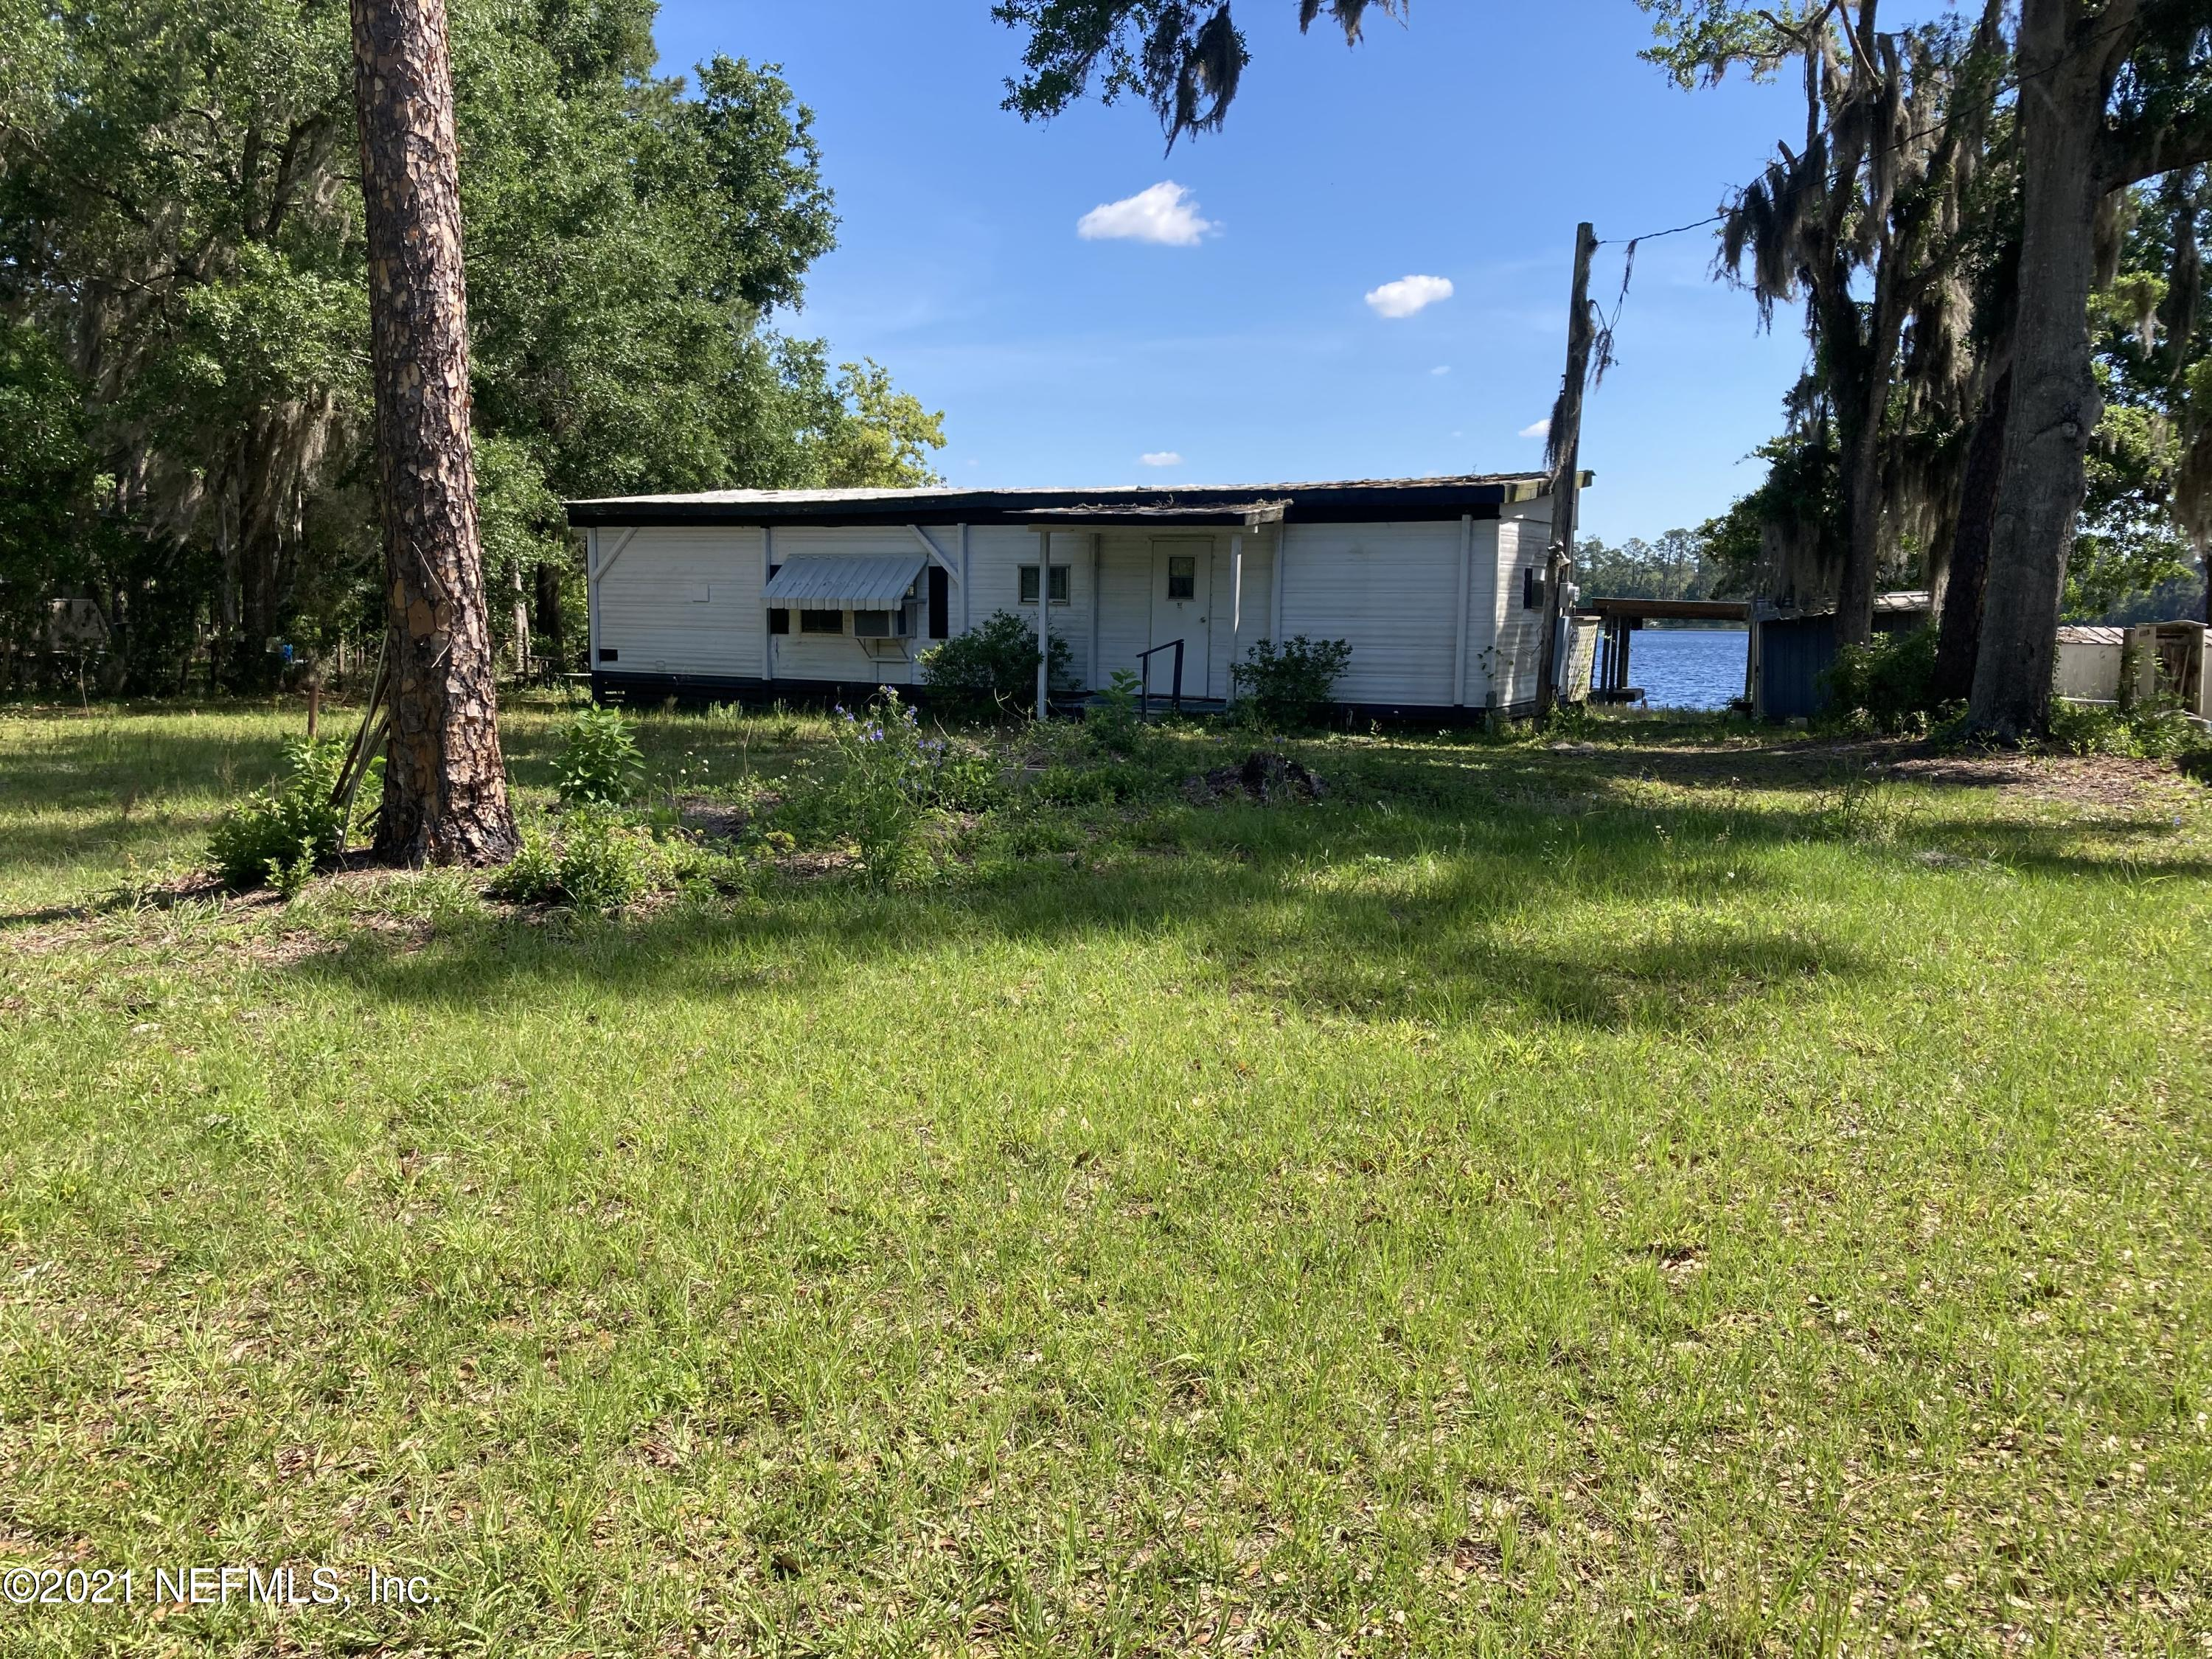 588 CO RD 21, HAWTHORNE, FLORIDA 32640, 2 Bedrooms Bedrooms, ,1 BathroomBathrooms,Residential,For sale,CO RD 21,1106721